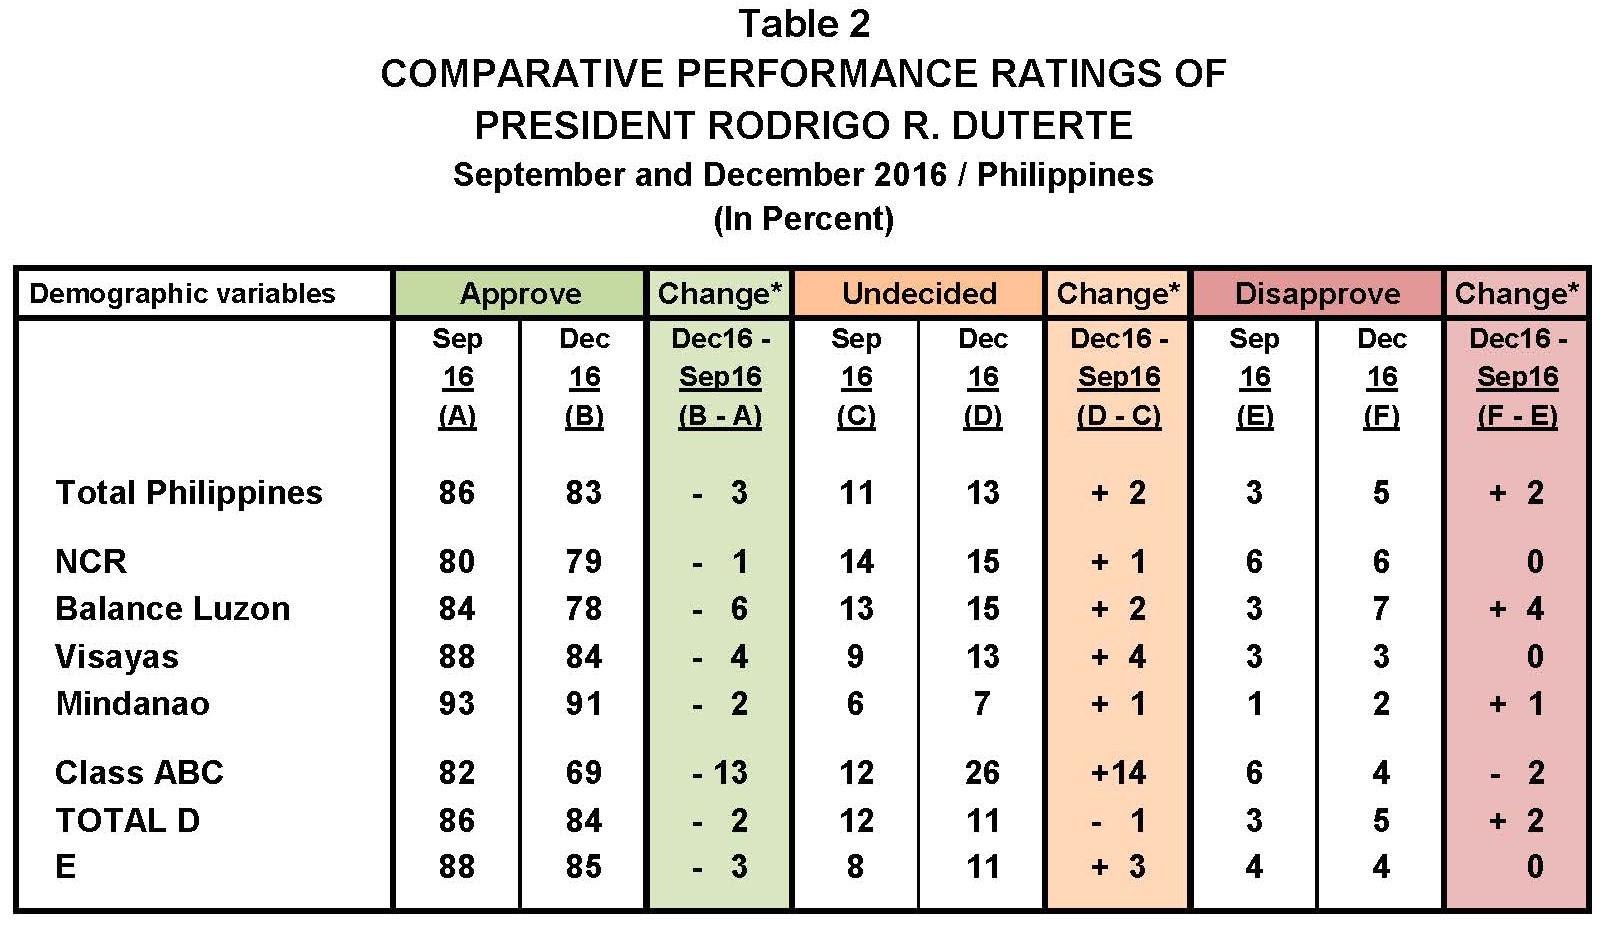 the predominant sentiment toward president duterte in the different geographic areas and socio economic groupings is one of trust 81 to 96 and 85 to 88